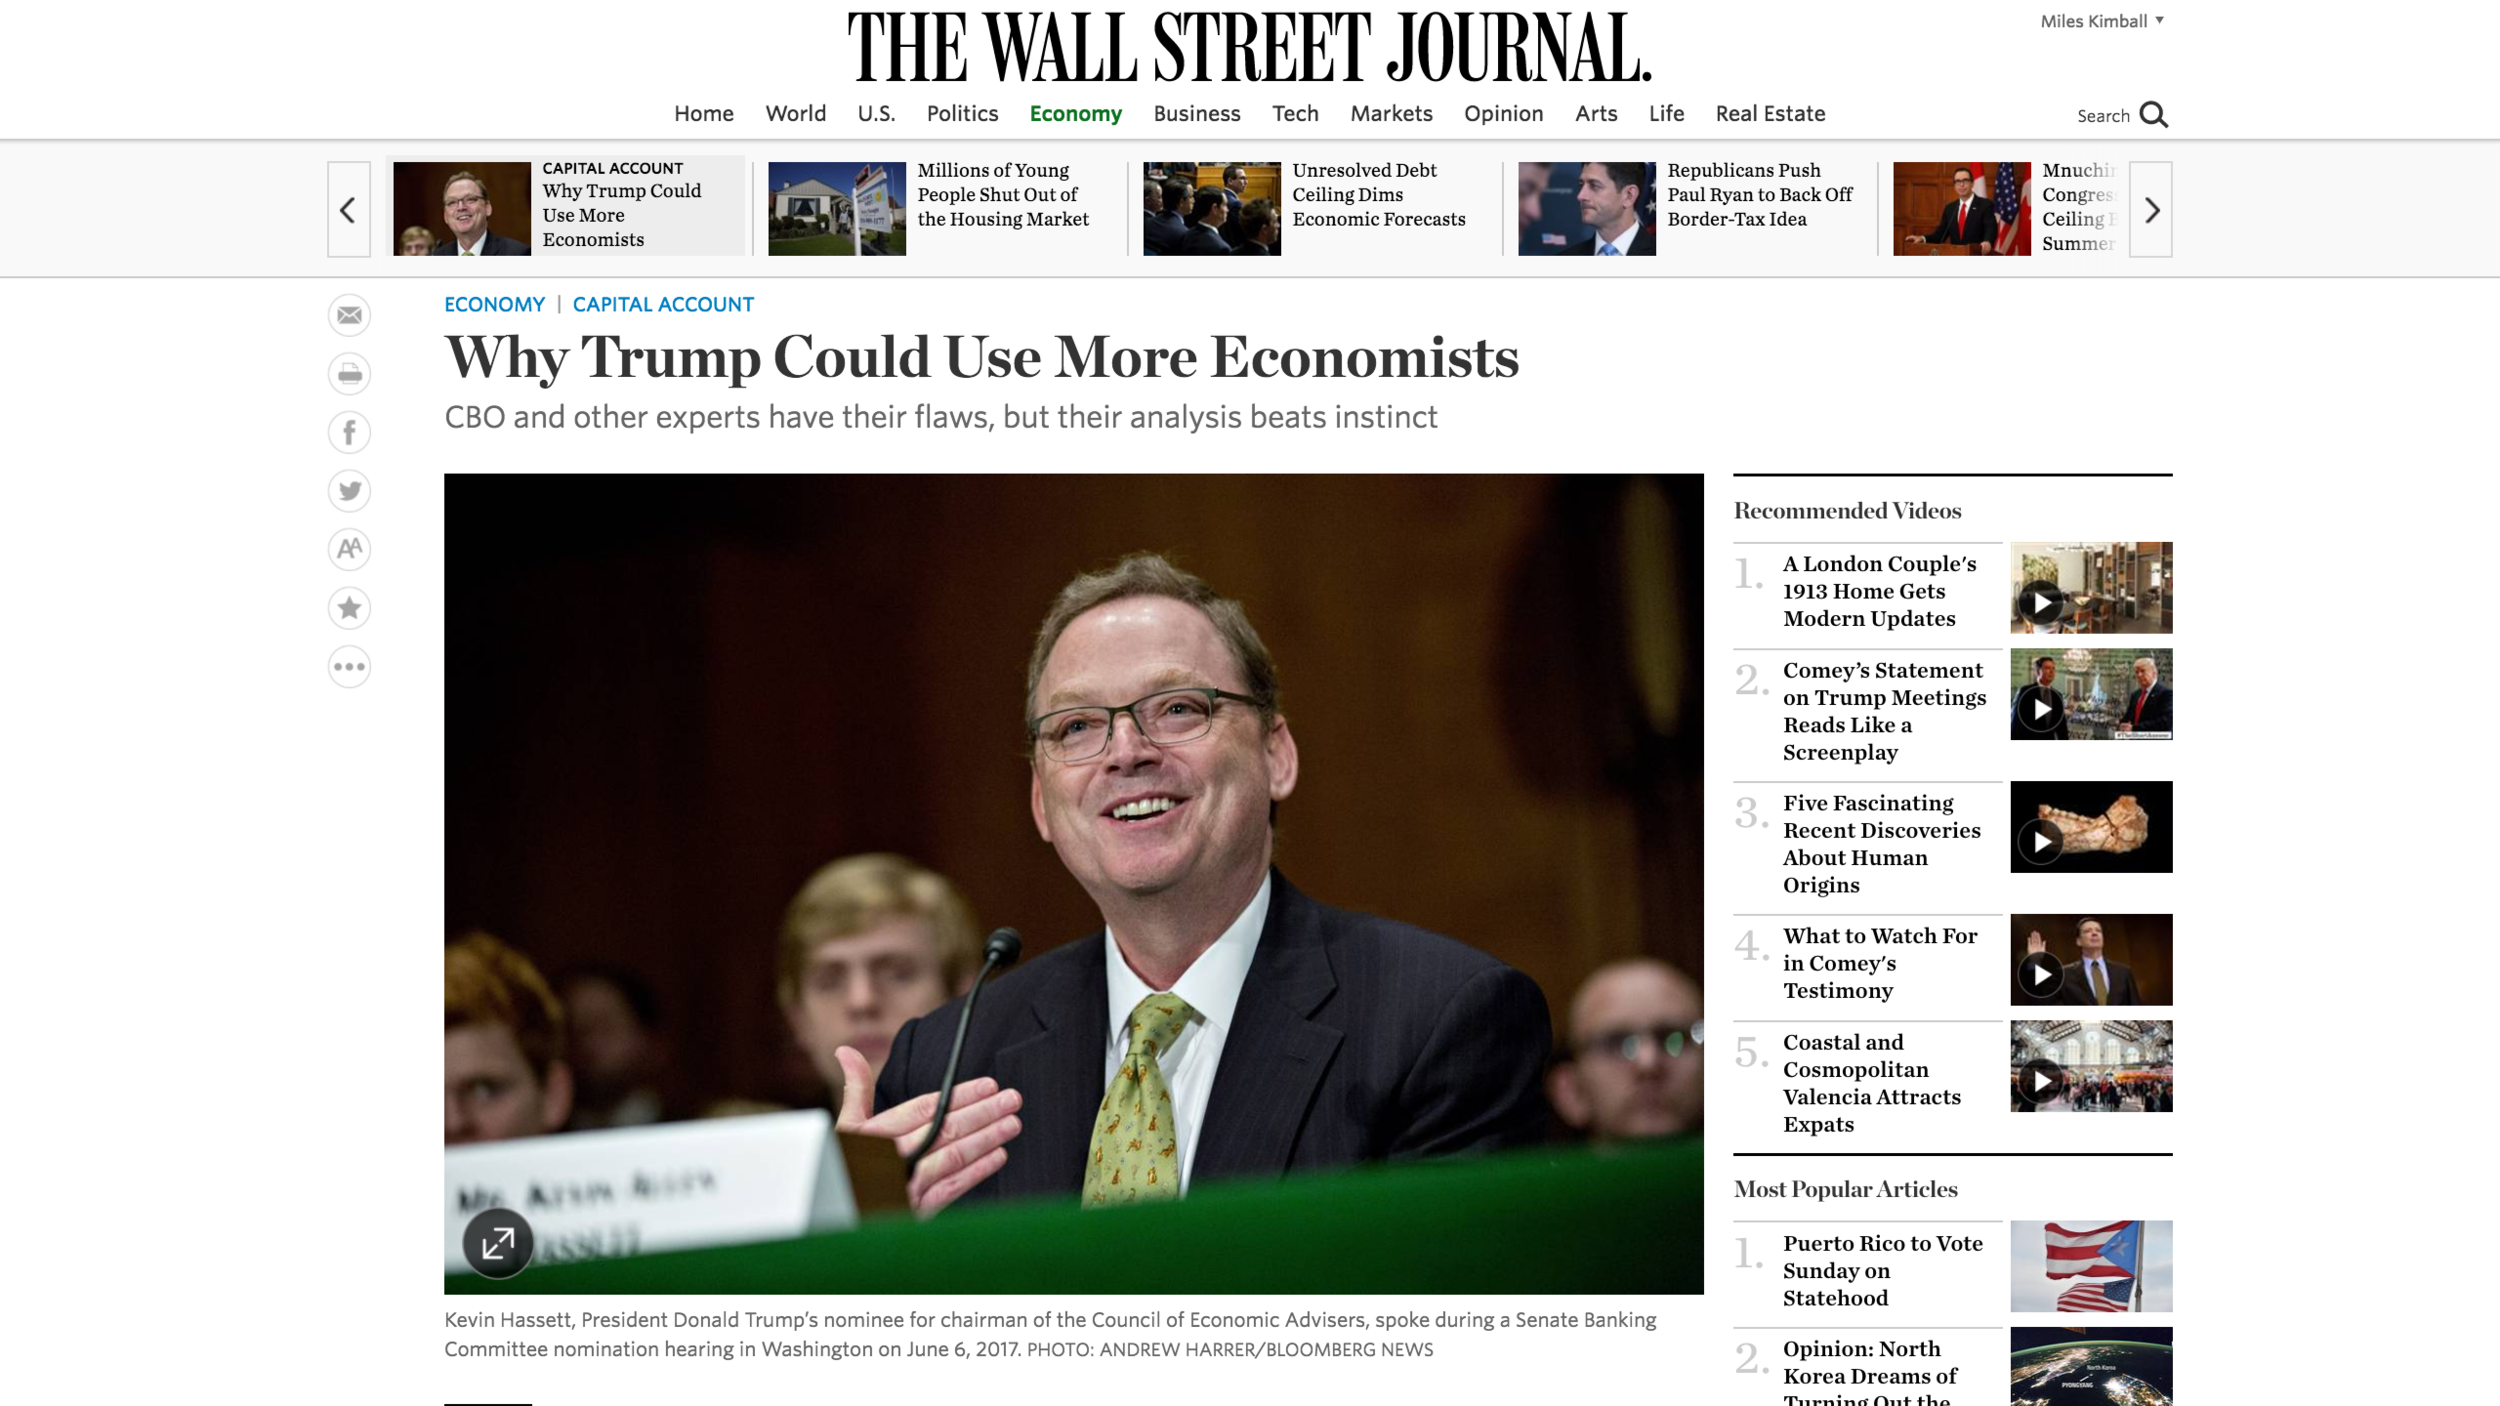 """Link to Greg Ip's June 7, 2017 Wall Street Journal article """"Why Trump Could Use More Economists CBO and other experts have their flaws, but their analysis beats instinct."""""""